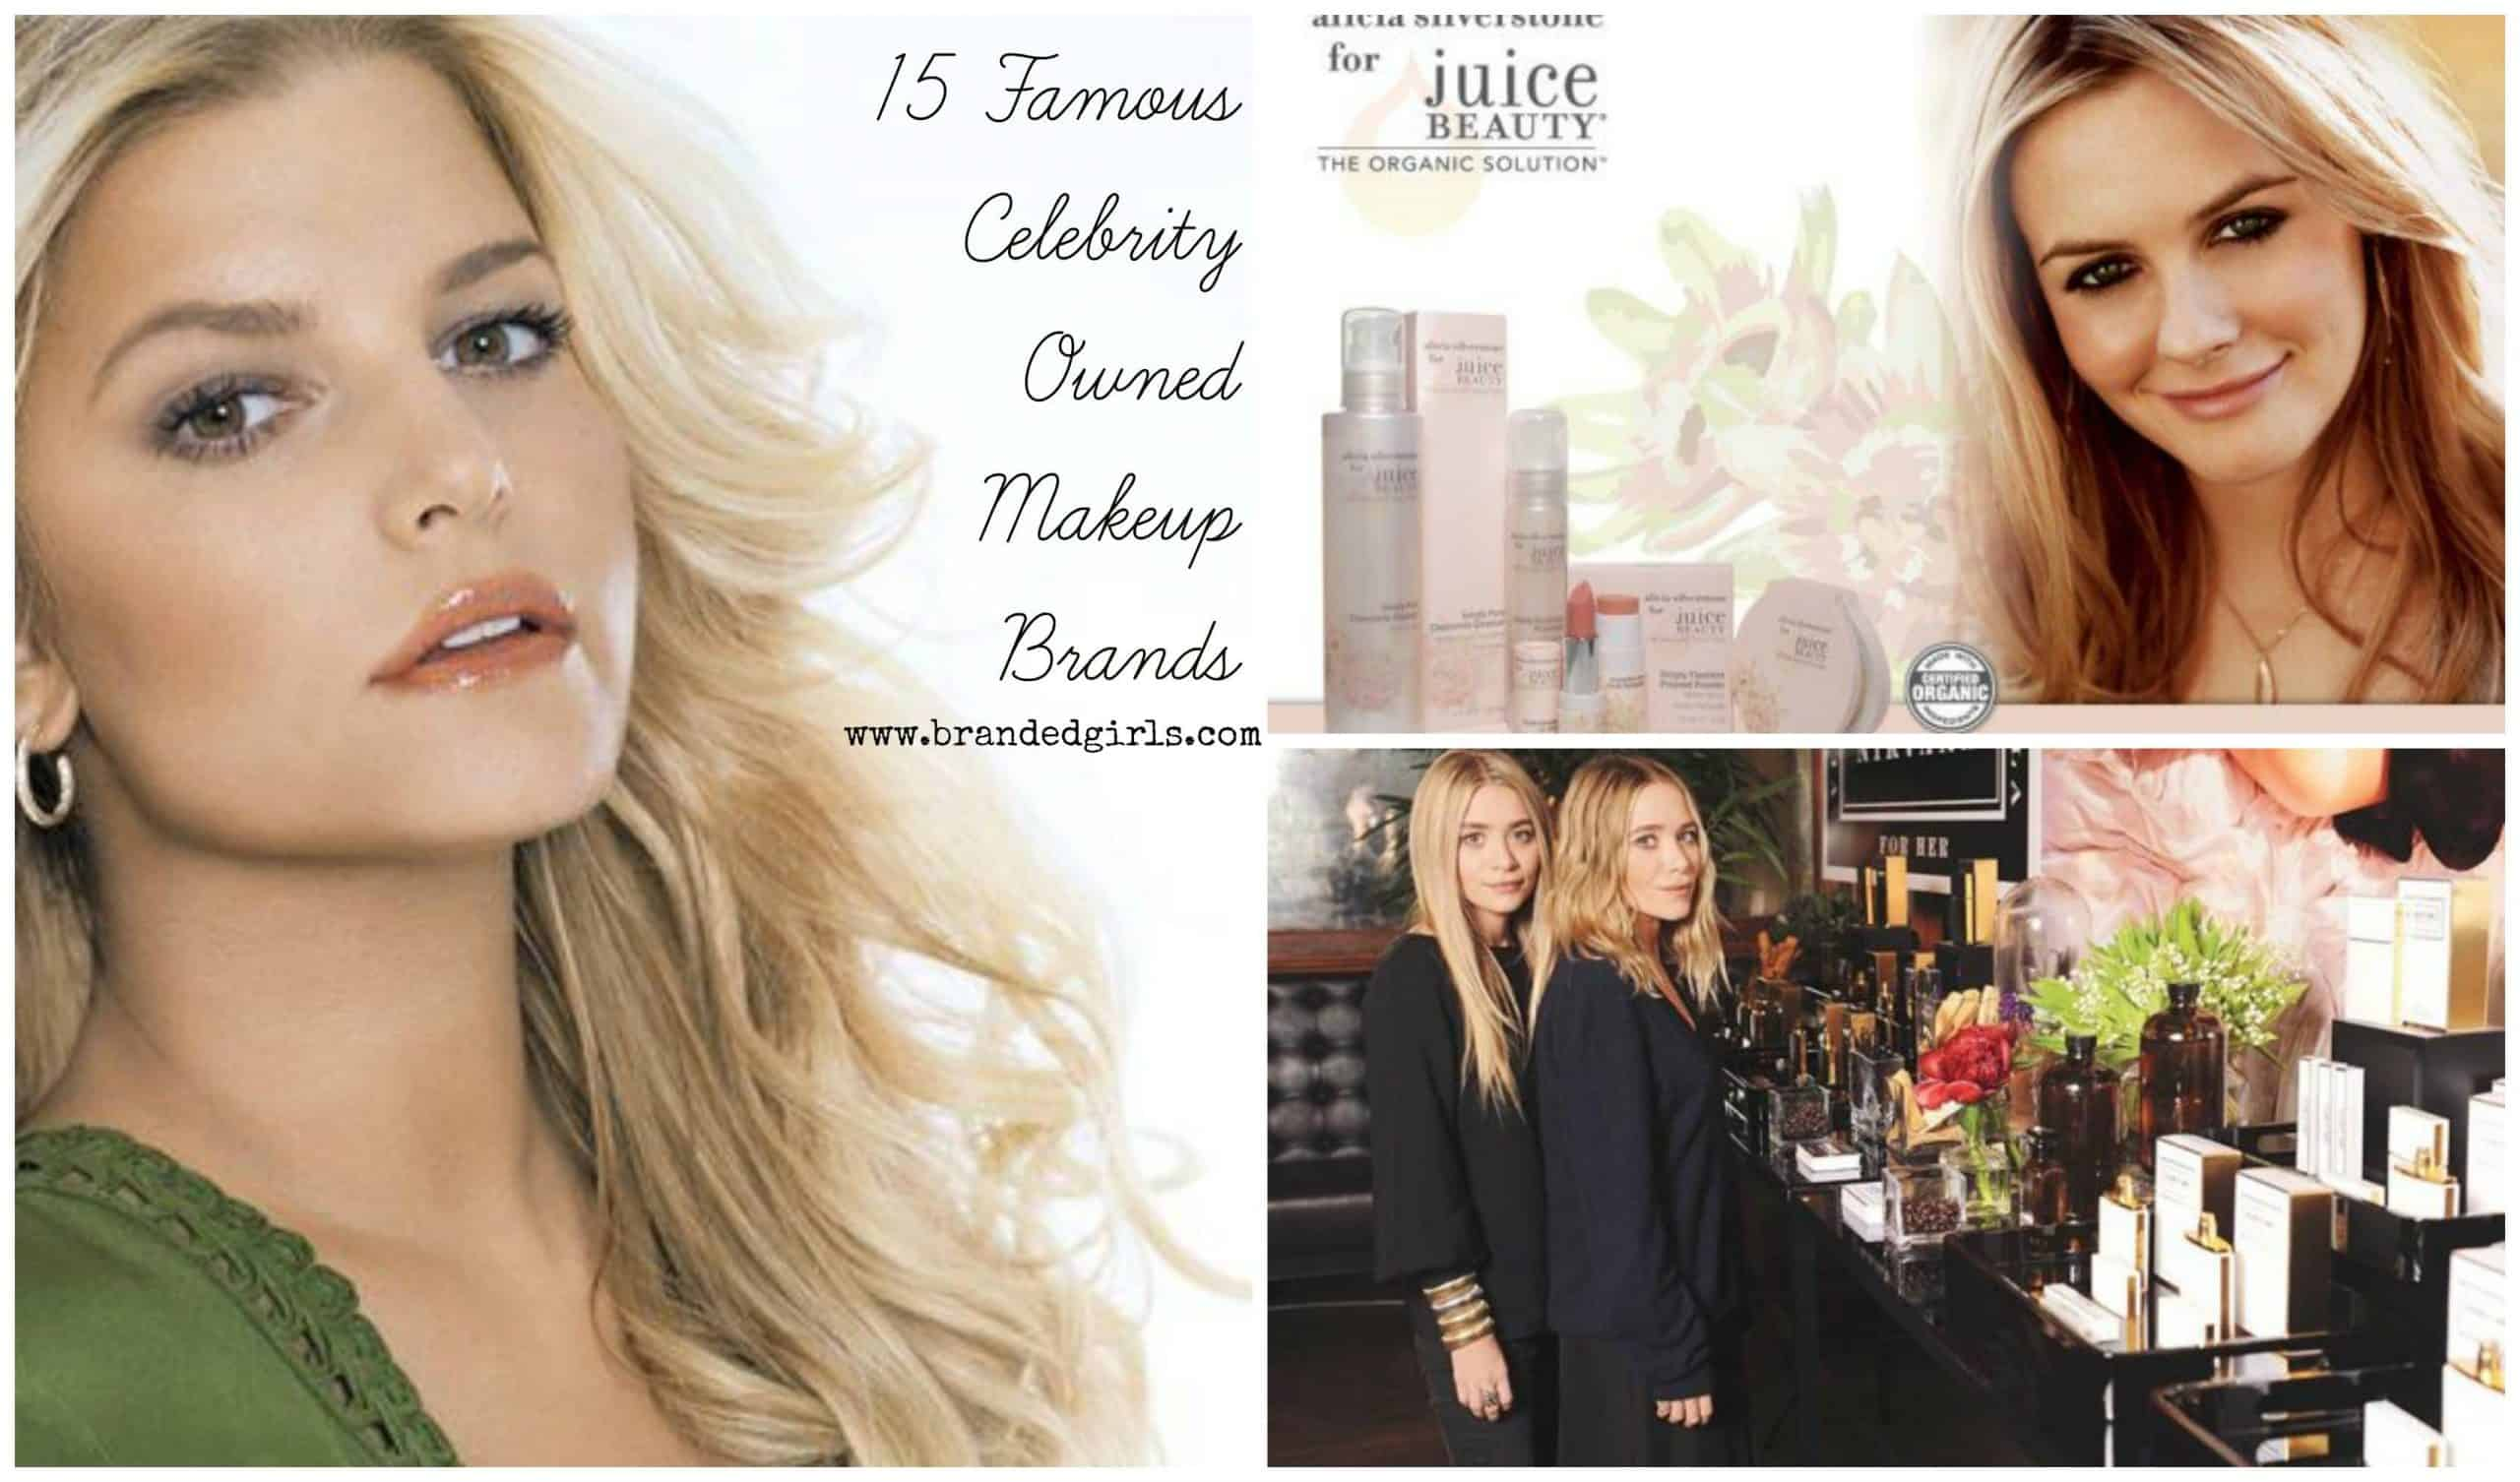 cosmetic lines owned by celebrities